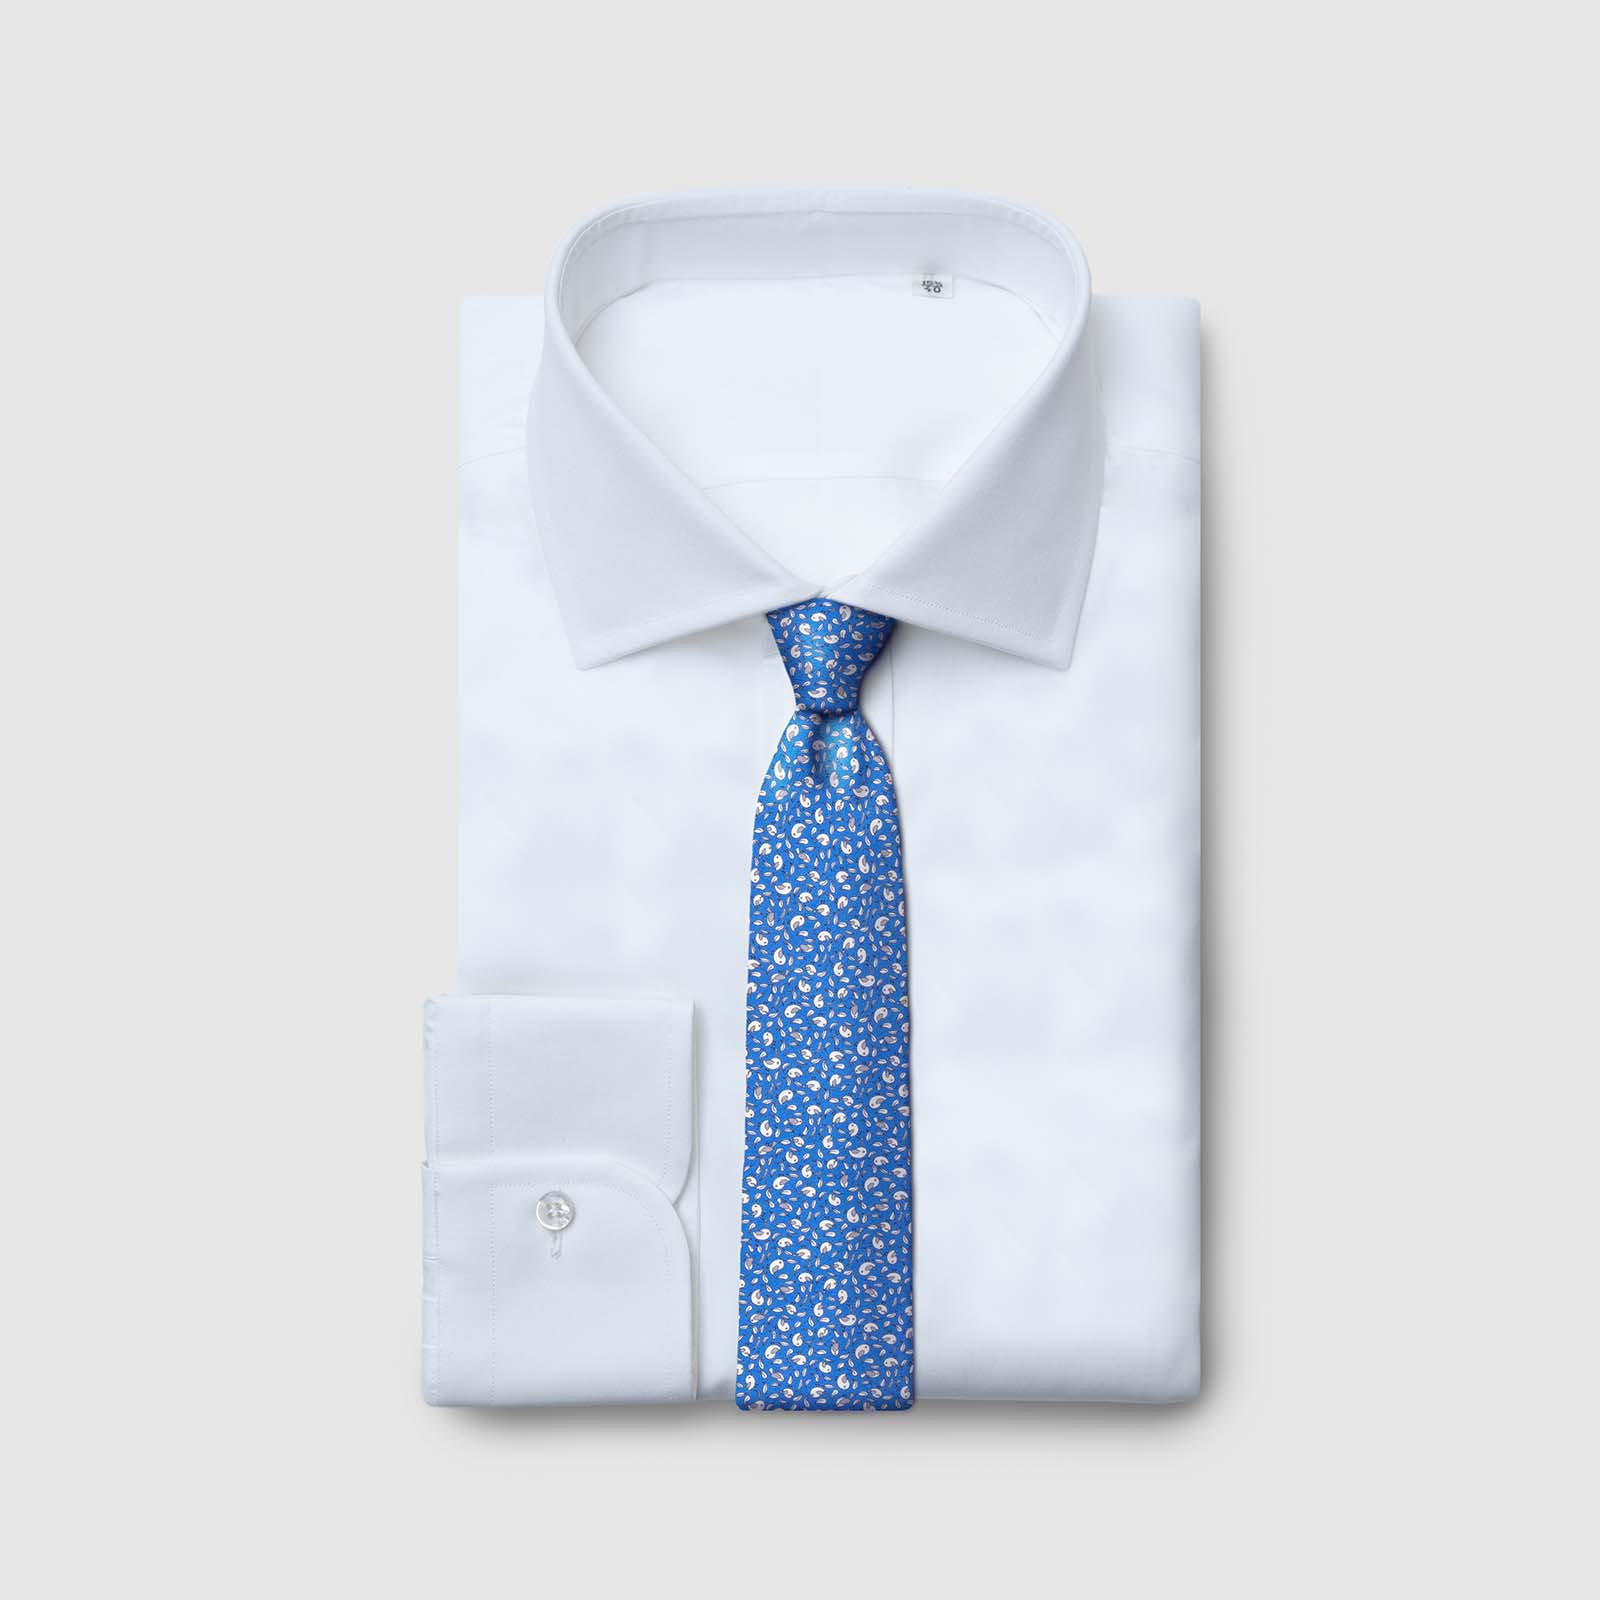 Blue background 5-Folds Tie with a printed micromotiv